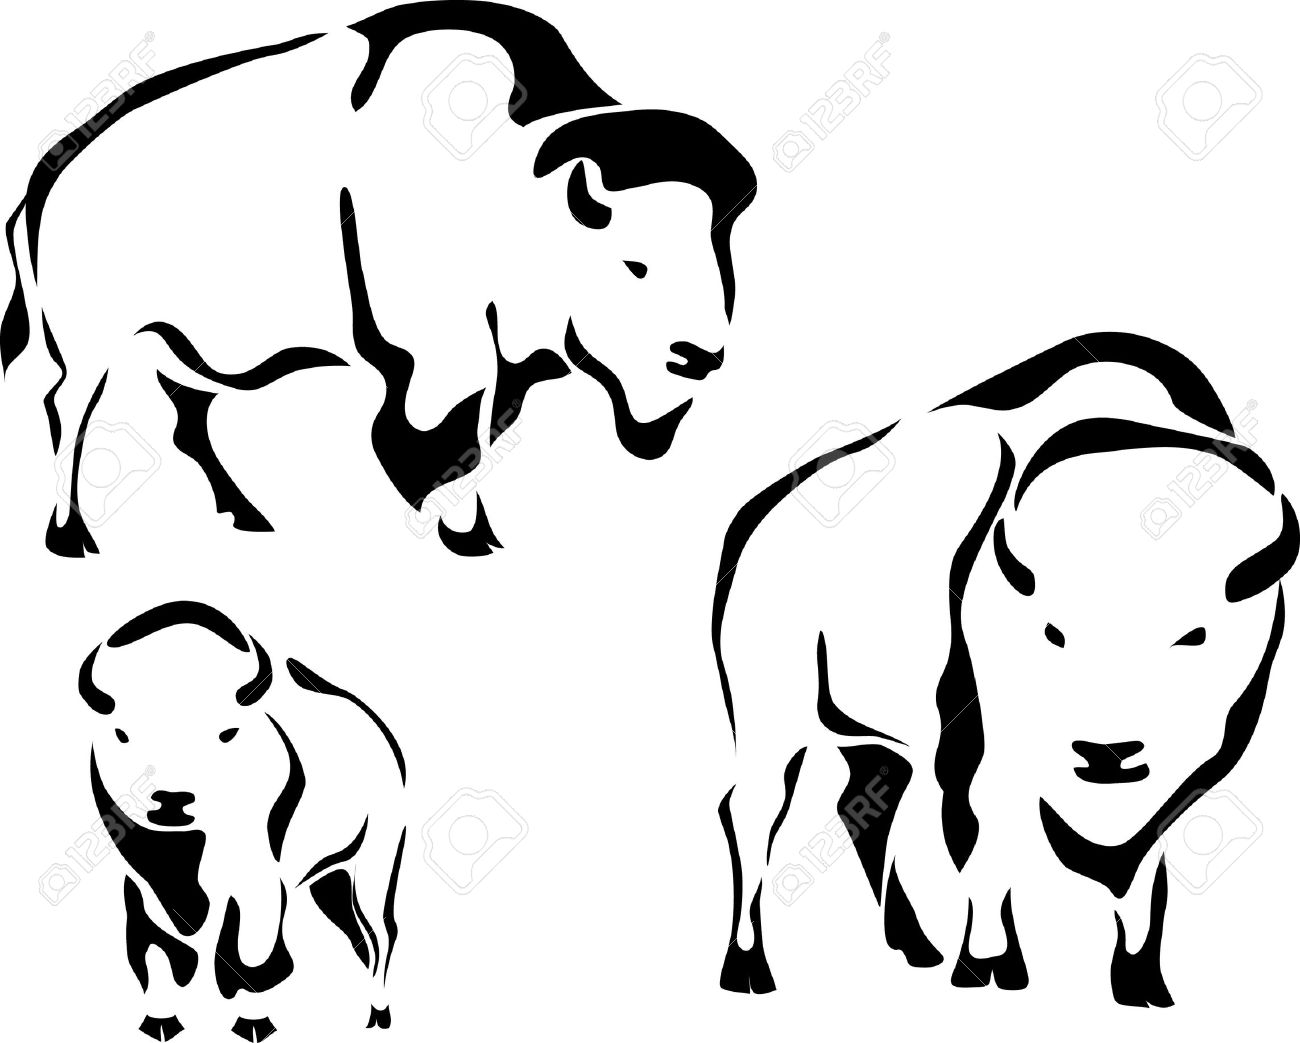 Bison head clipart black and white png royalty free Free Black Bison Cliparts, Download Free Clip Art, Free Clip Art on ... png royalty free